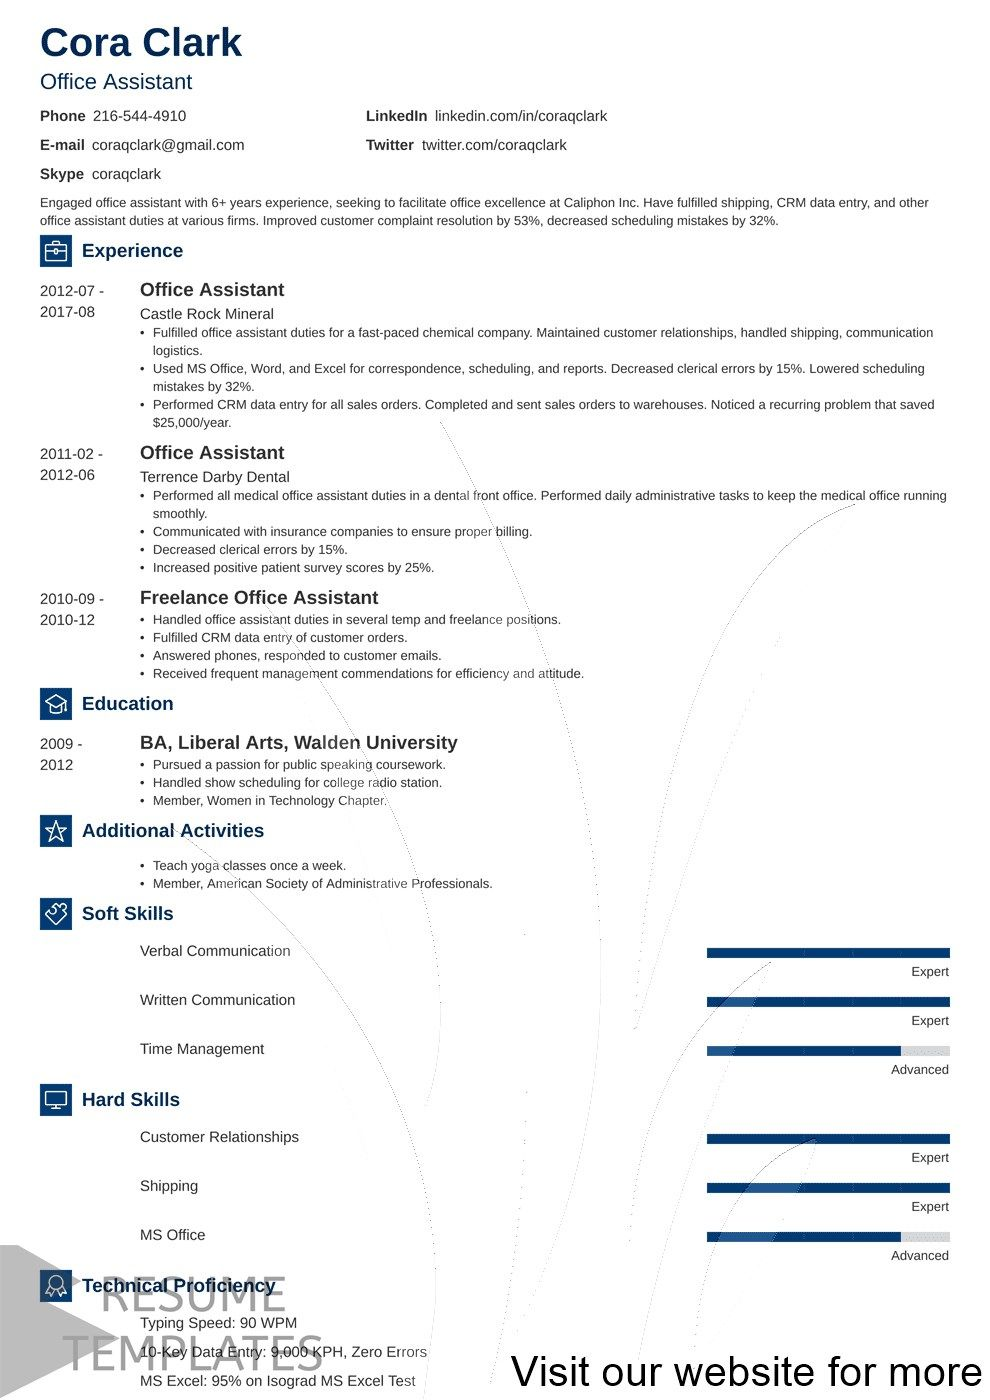 cv template word free download 2018 in 2020 Free cv